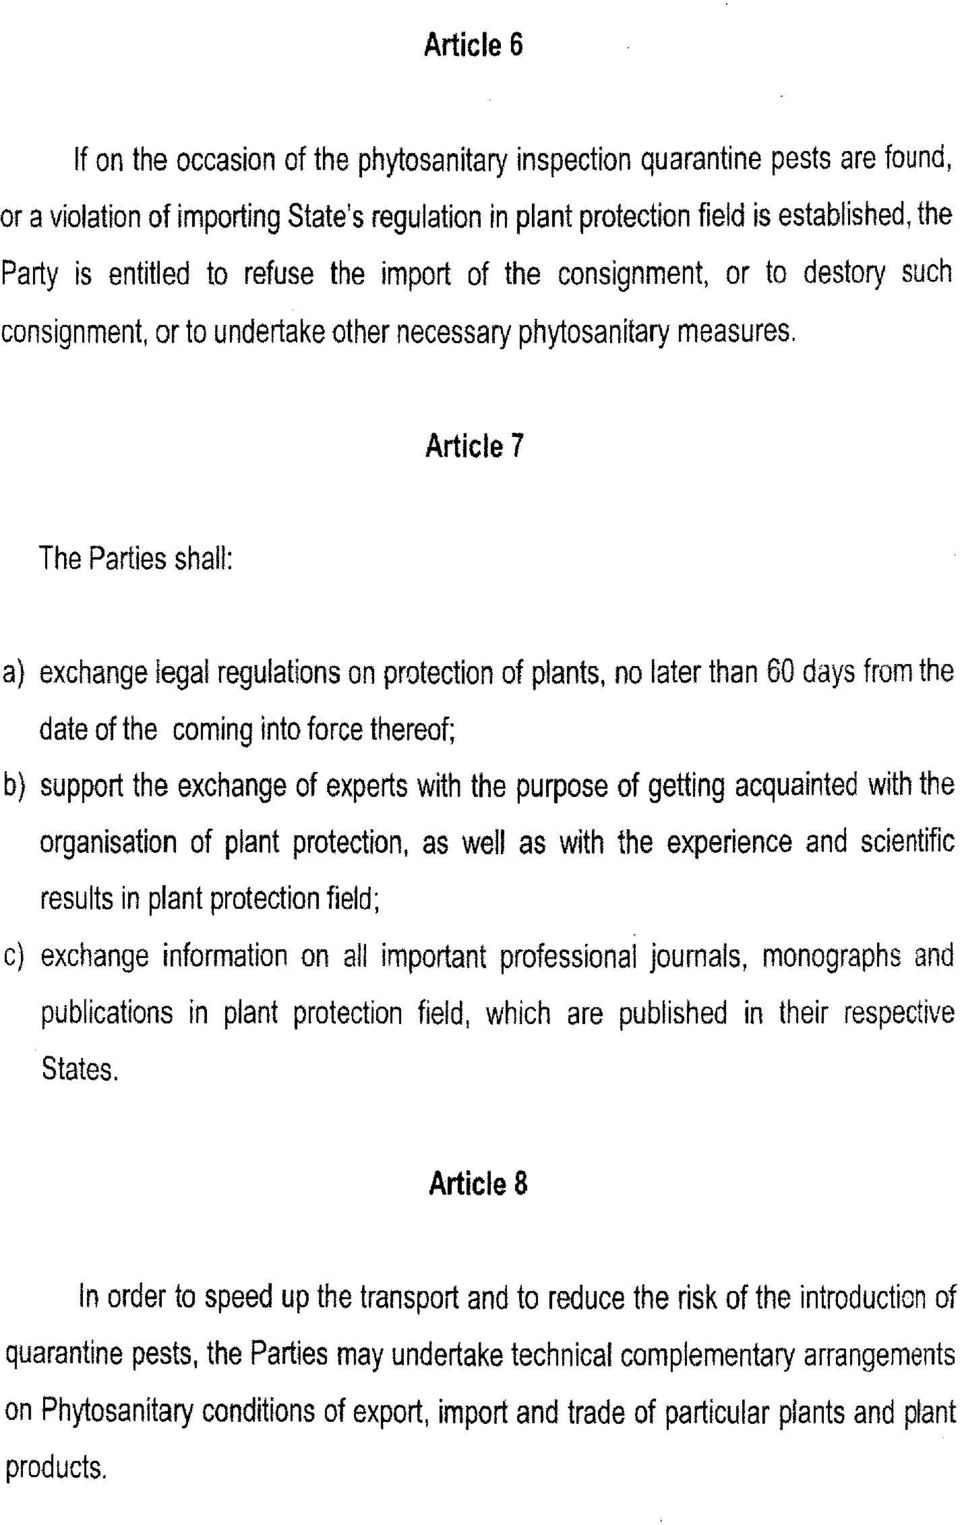 Article 7 The Parties shall: a) exchange legal regulations on protection ofplants, no later than 60 days from the date ofthe coming into force thereof; b) support the exchange of experts with the